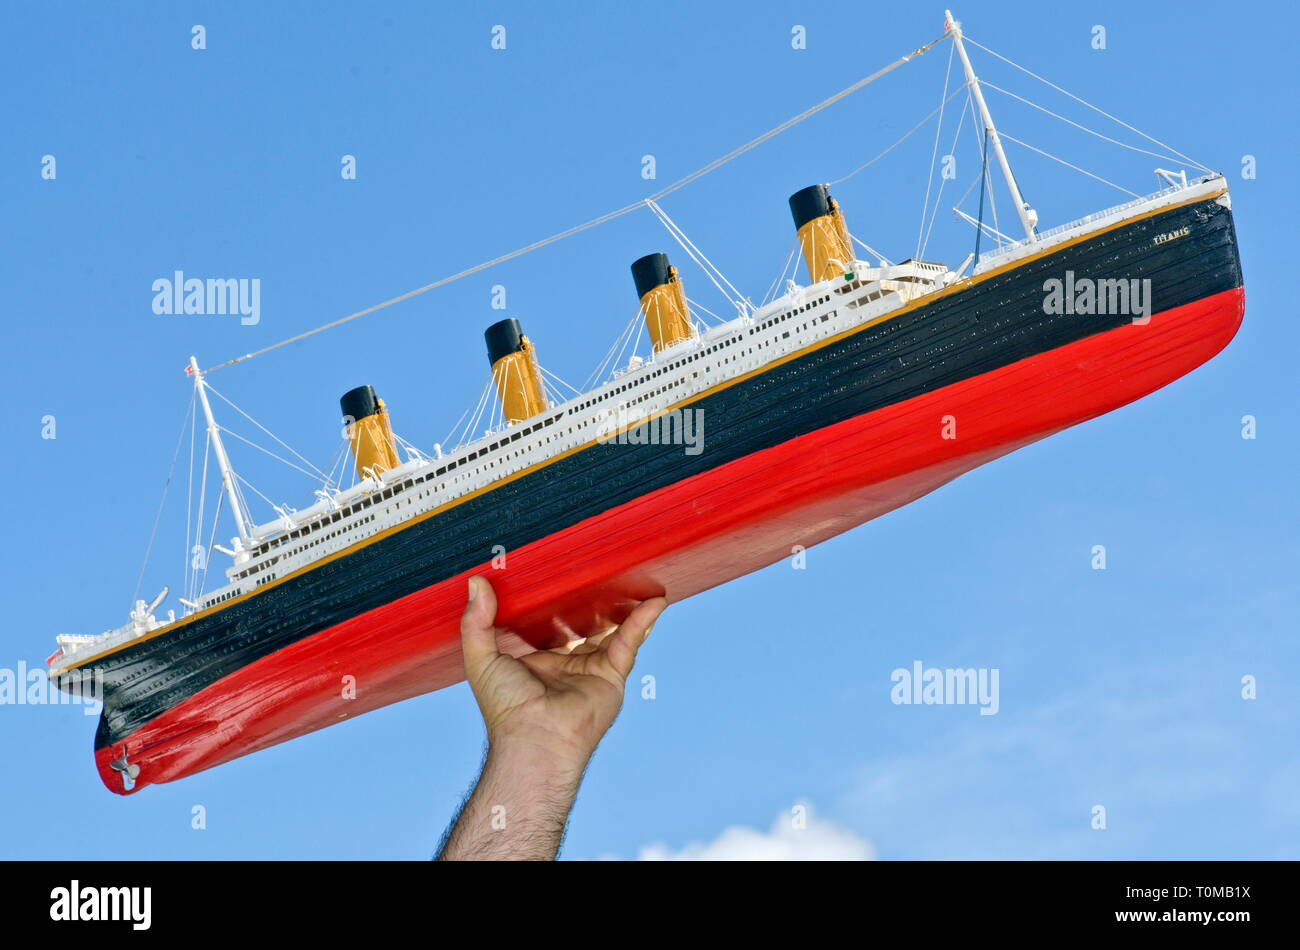 toys, Titanic, model ship, reproduced in facsimile, circa 1m long, ship, upholding, Germany, circa 1985, Additional-Rights-Clearance-Info-Not-Available - Stock Image